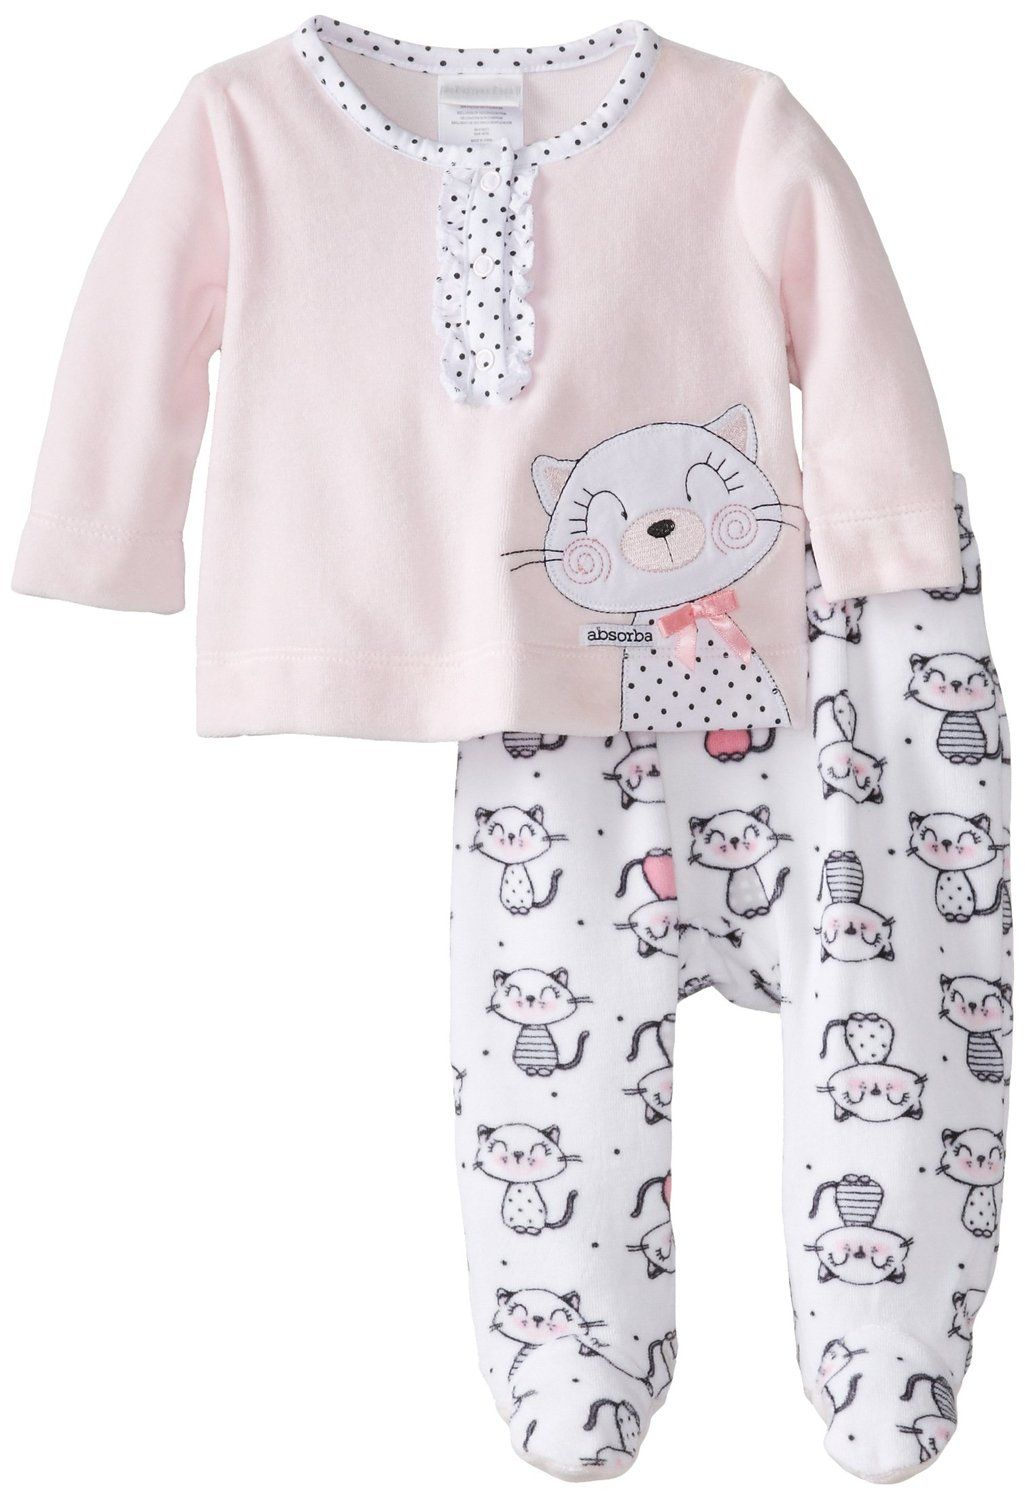 c9e03ba8ddc7 Amazon.com  ABSORBA Baby-Girls Newborn G Kitty Velour Footed Pant ...